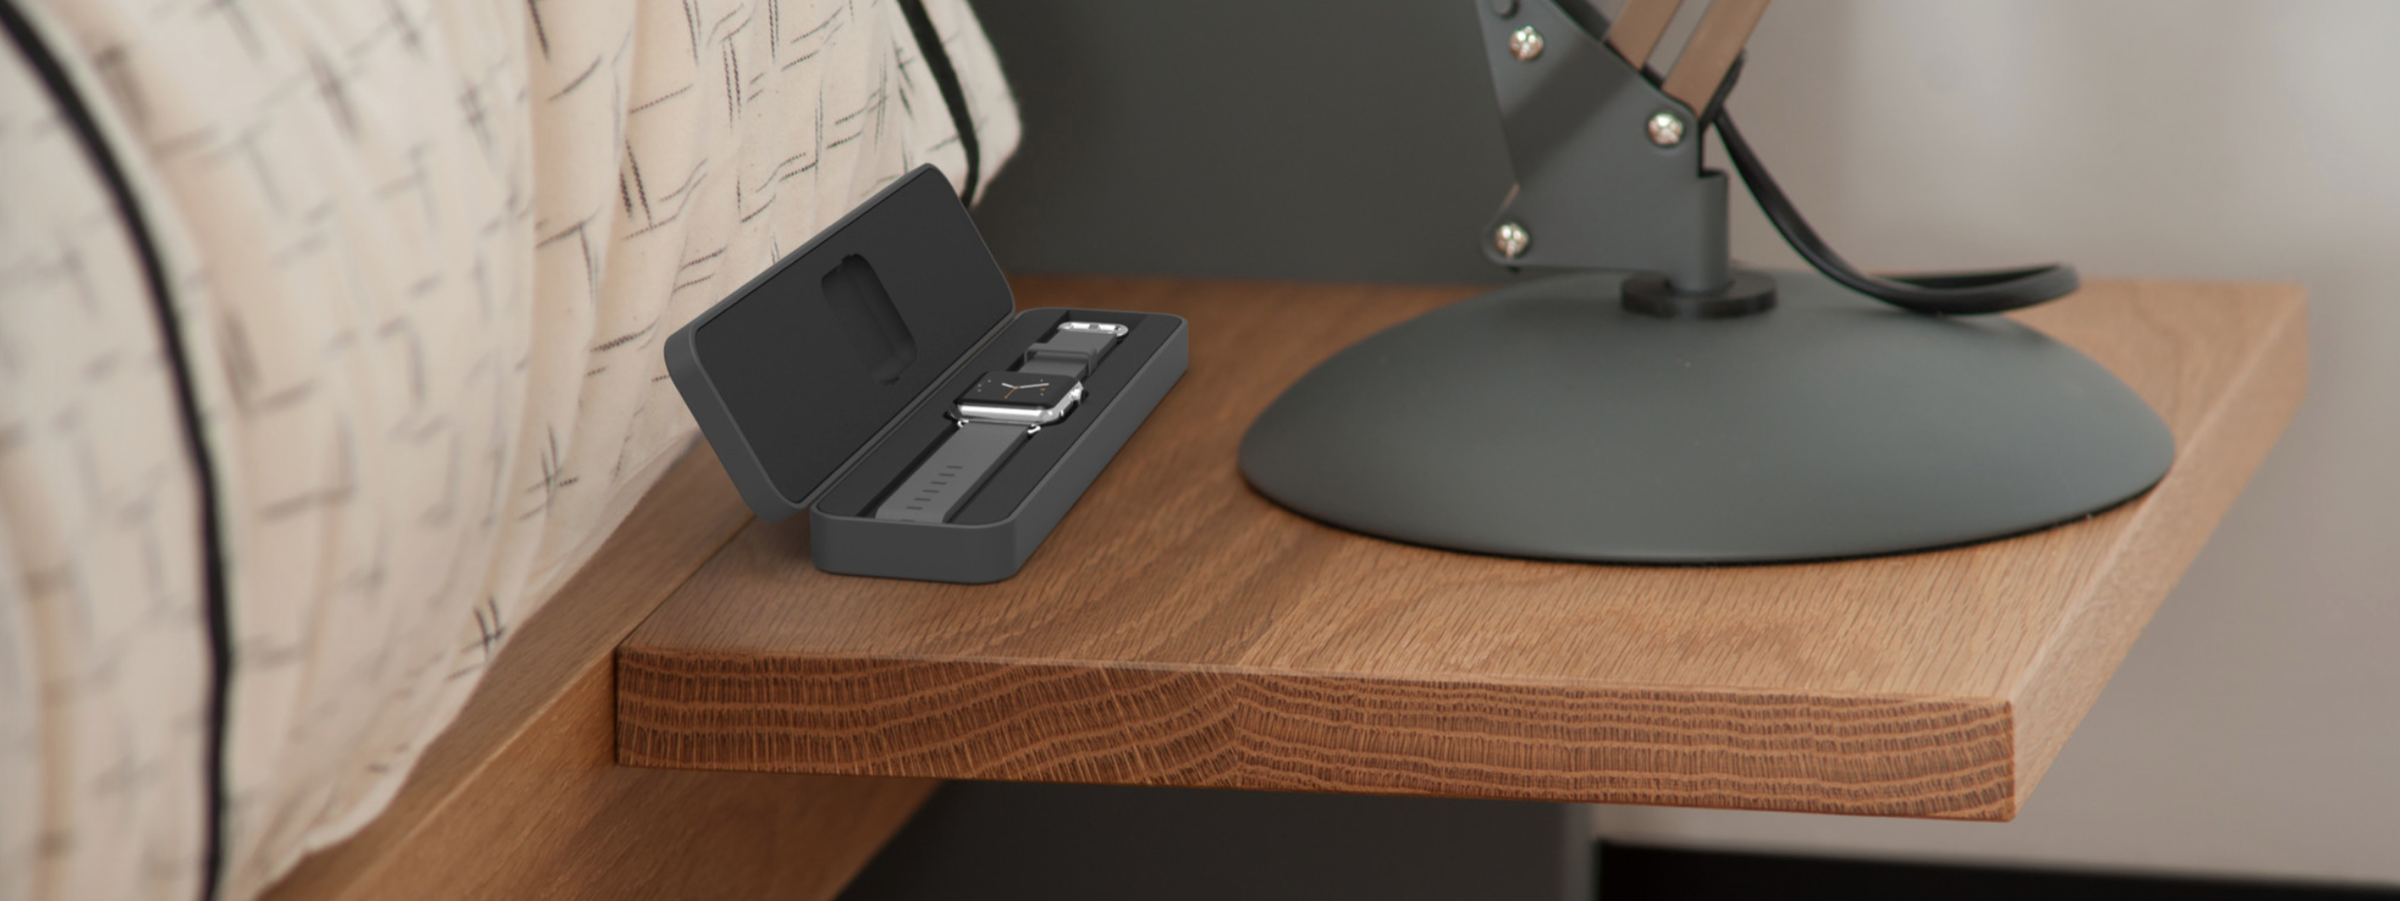 WatchKeeper is a smart dock that can charge your Apple Watch, and protect it